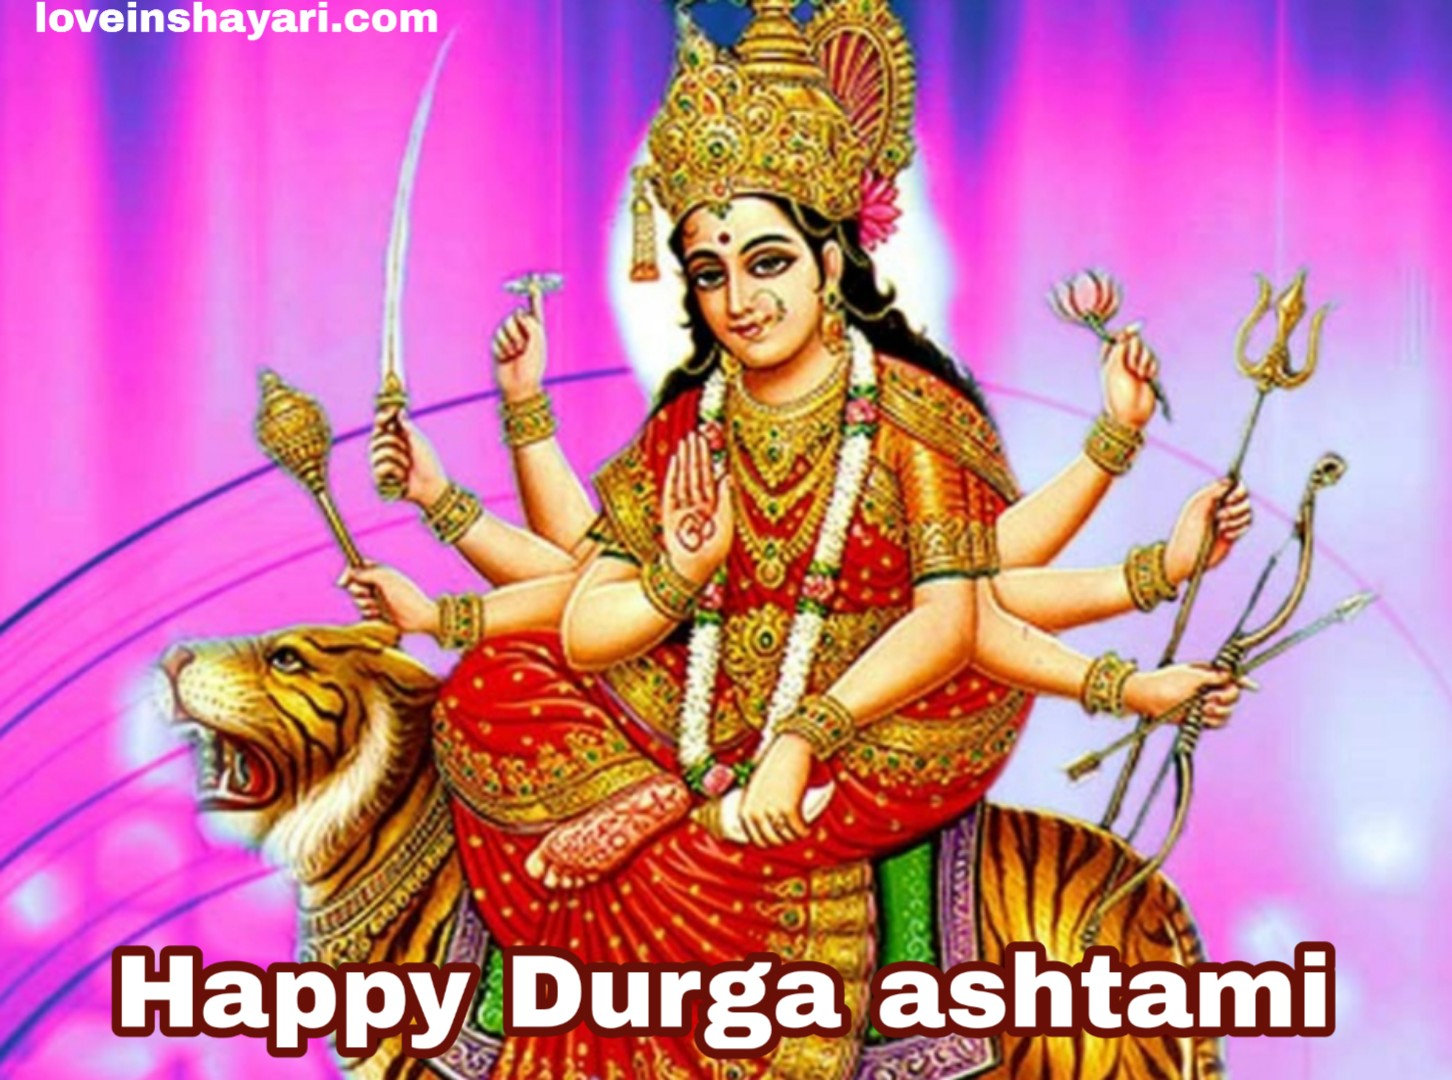 Photo of Durga ashtami images 2020 hd